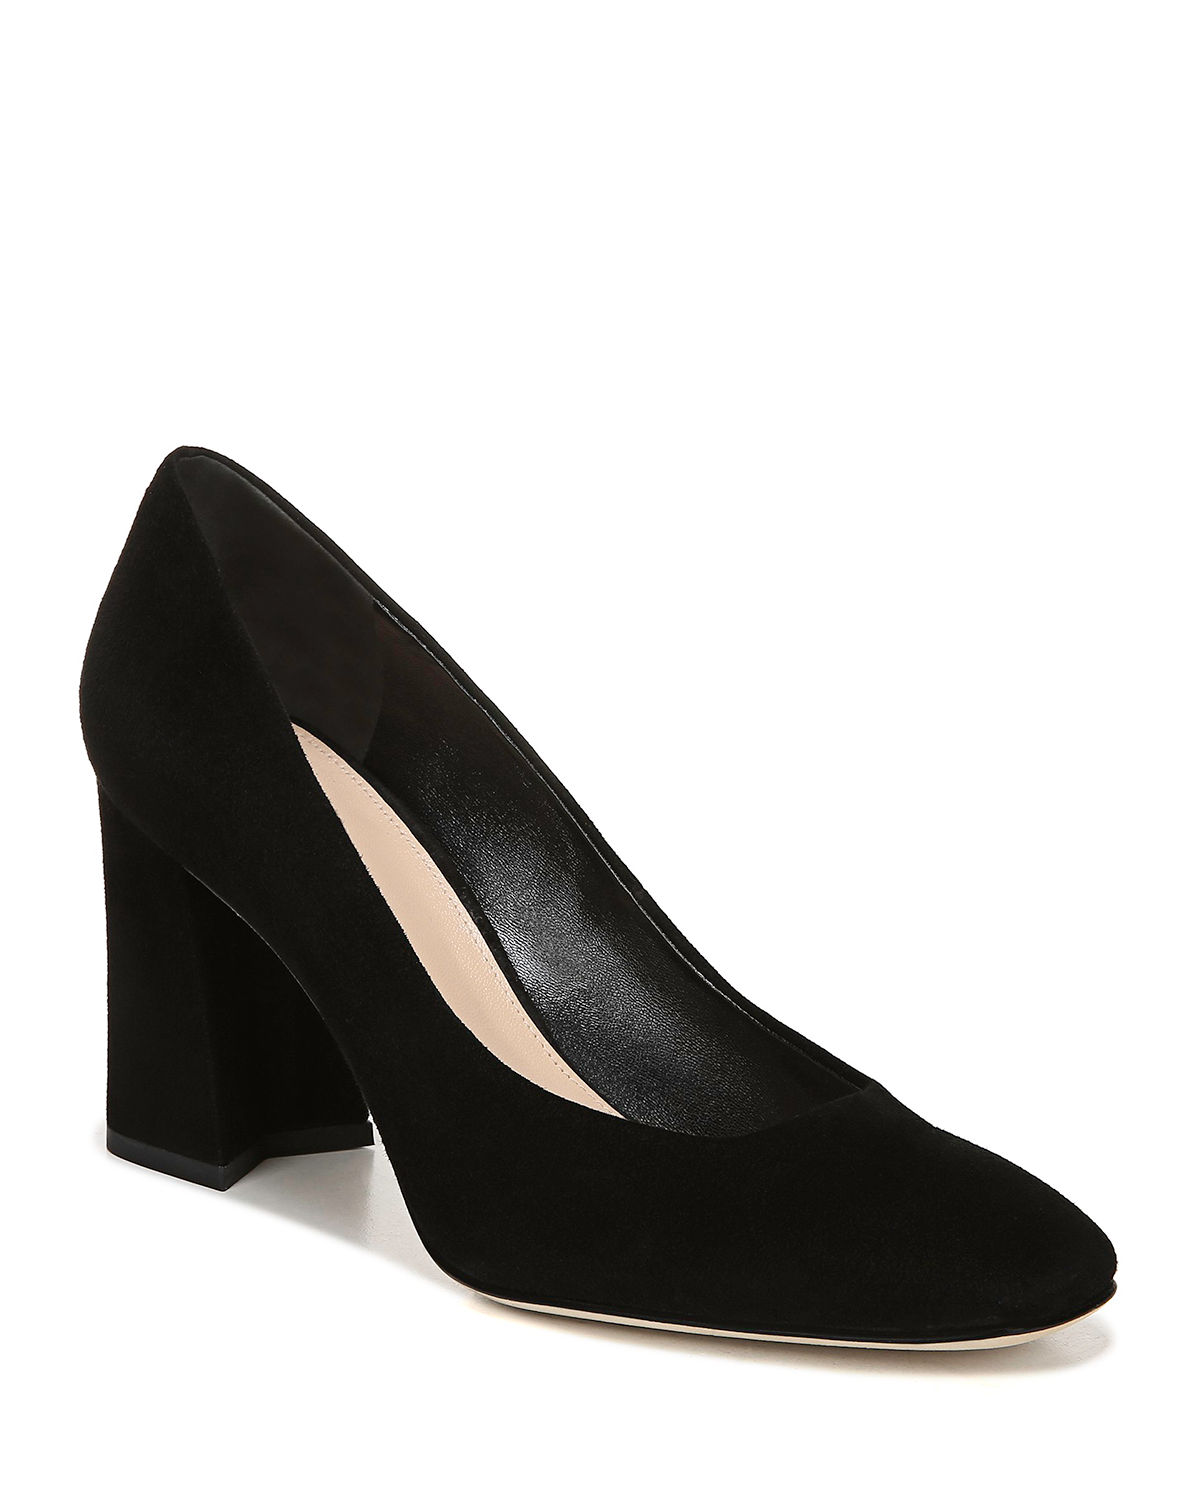 Via Spiga Pumps BEATRICE SUEDE SLIP-ON PUMPS